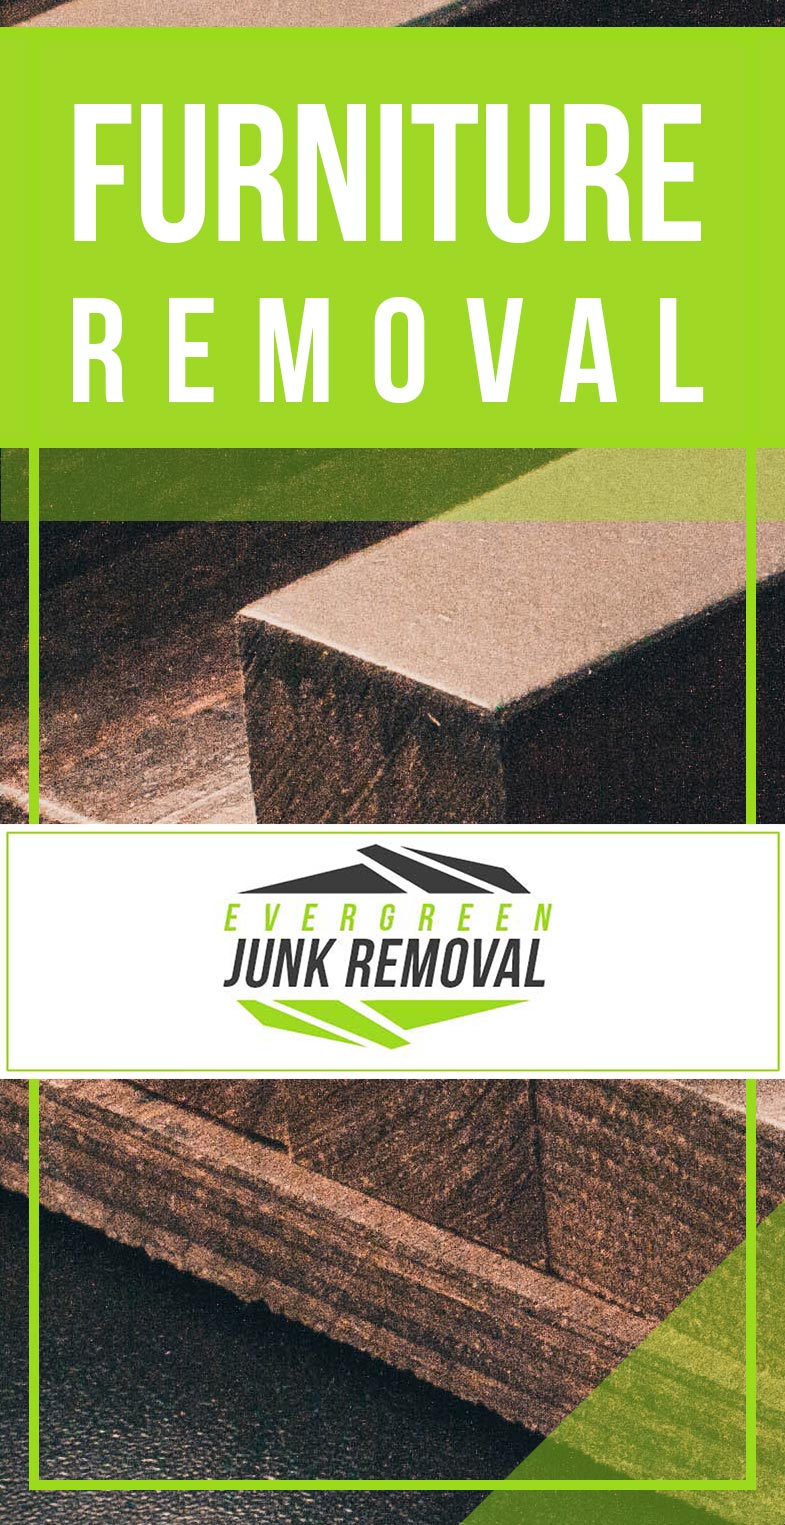 Junk Removal Wellington Furniture Removal